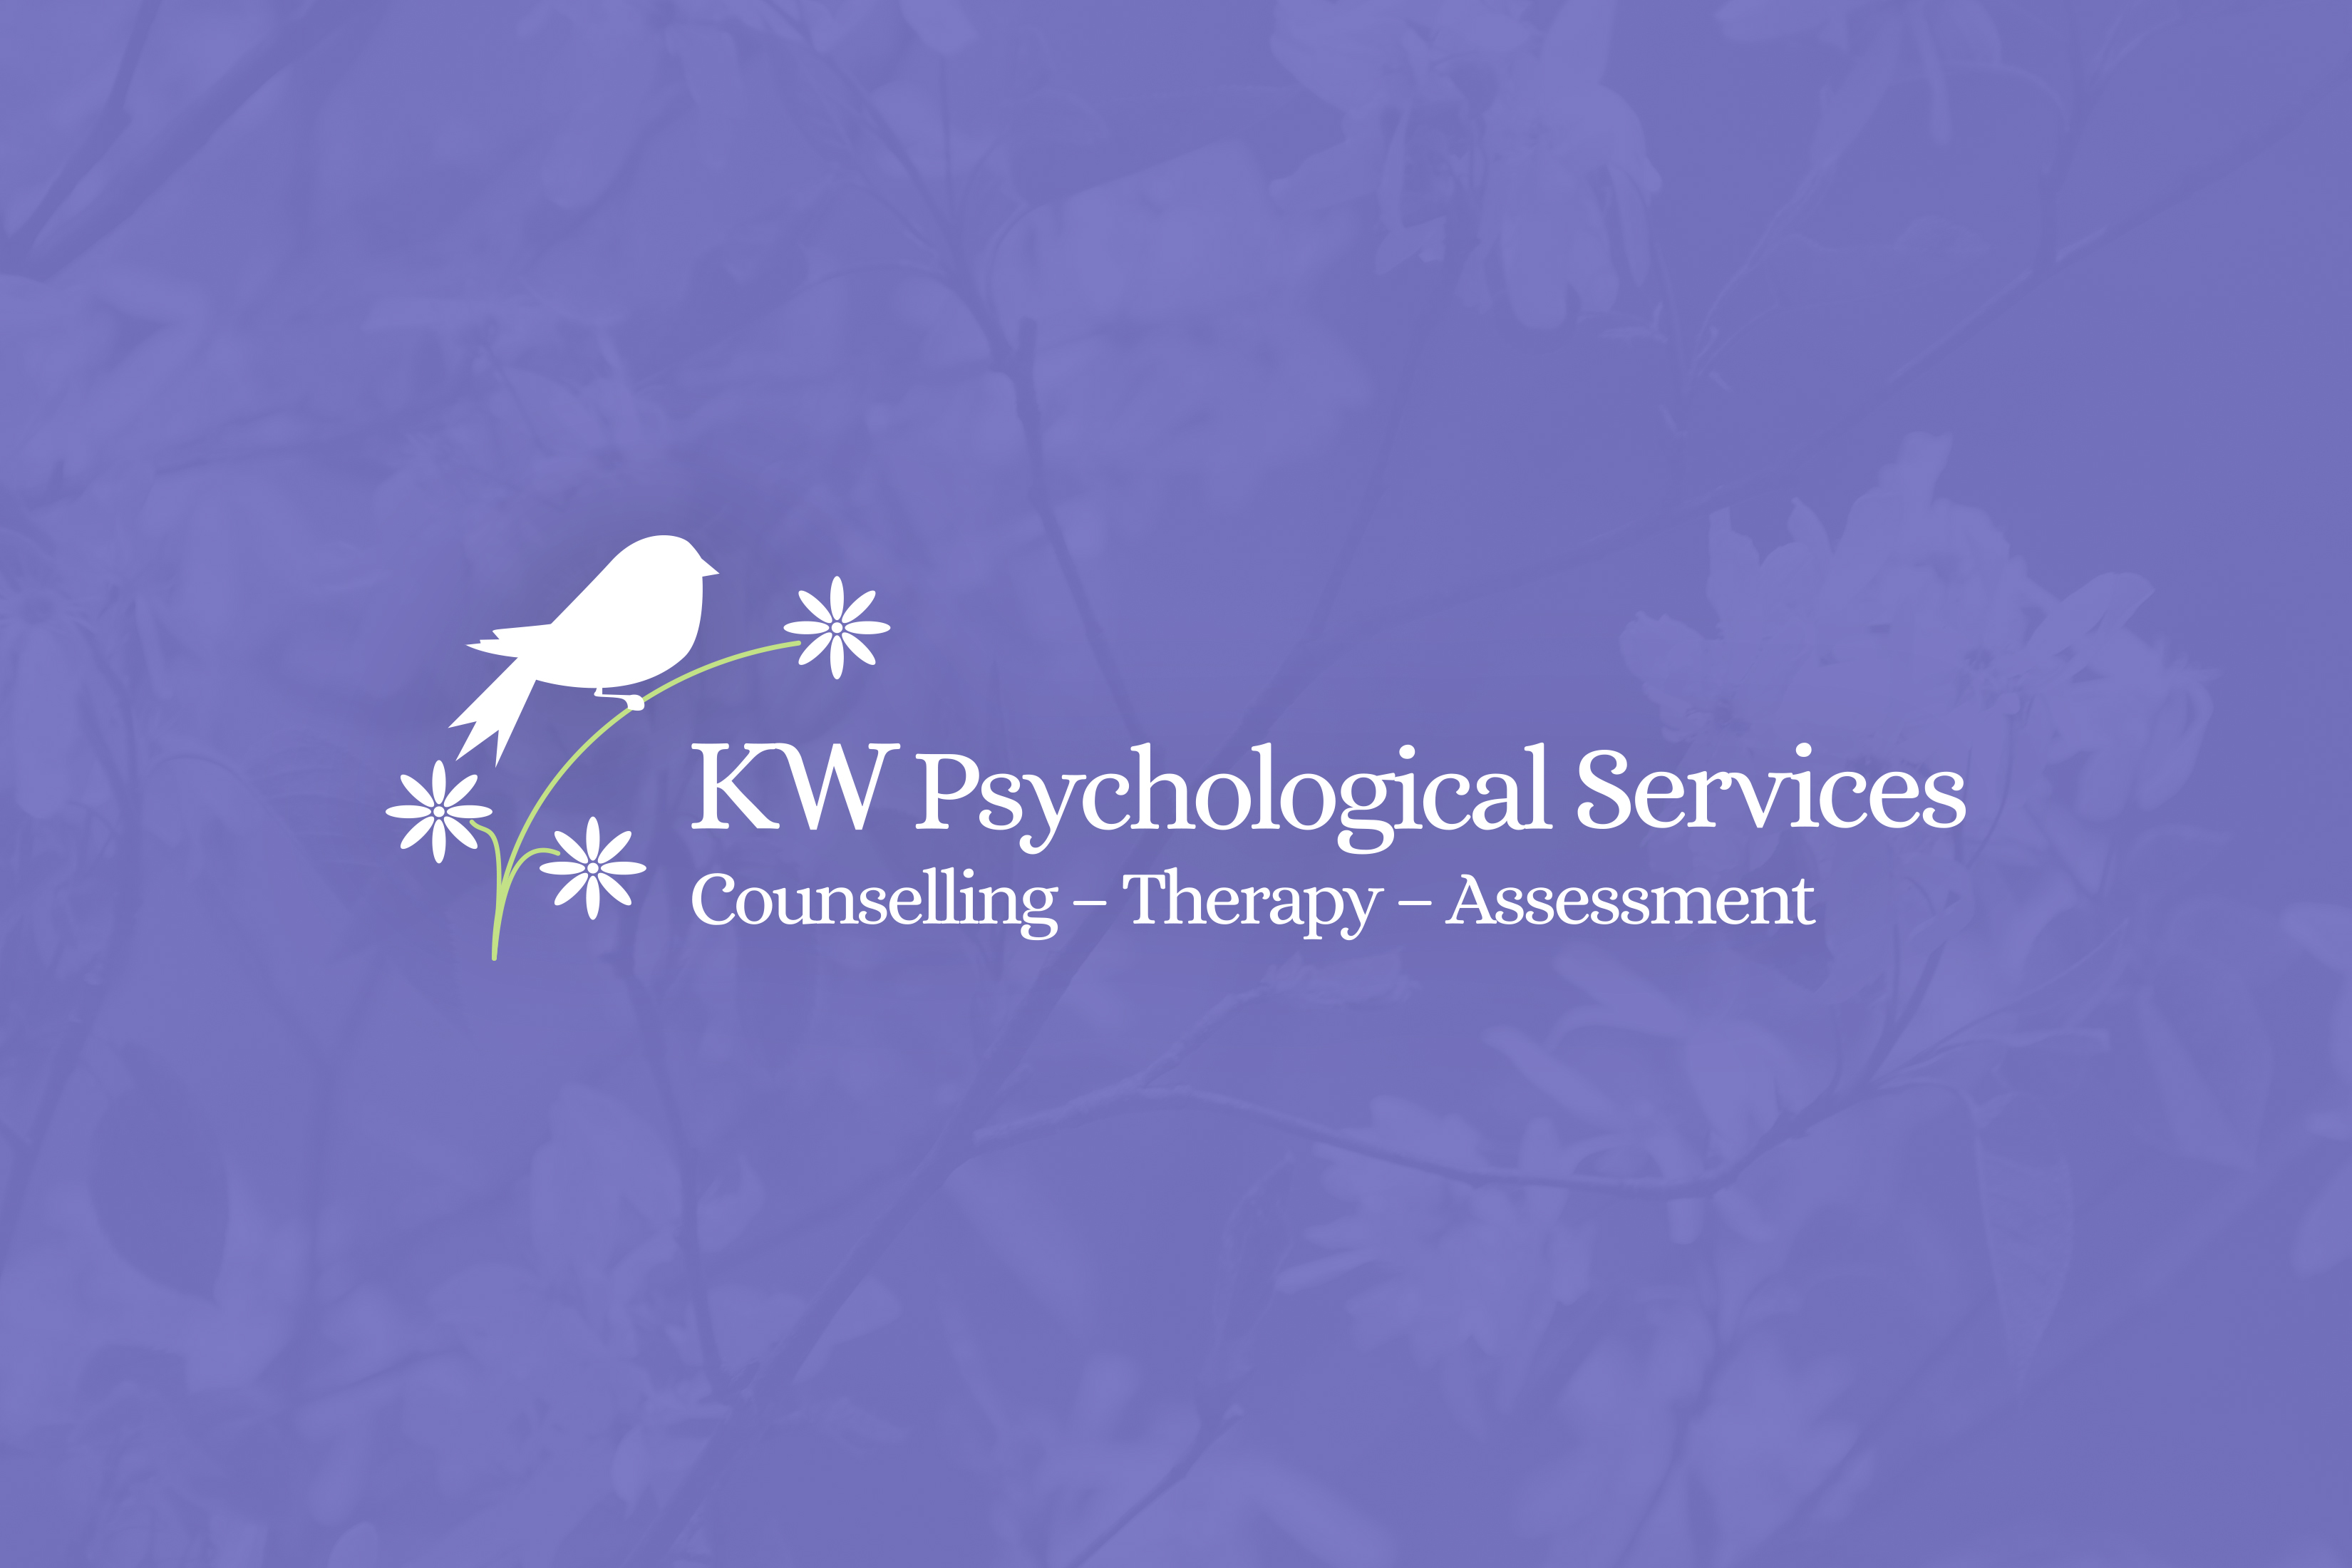 KW Psychological Services